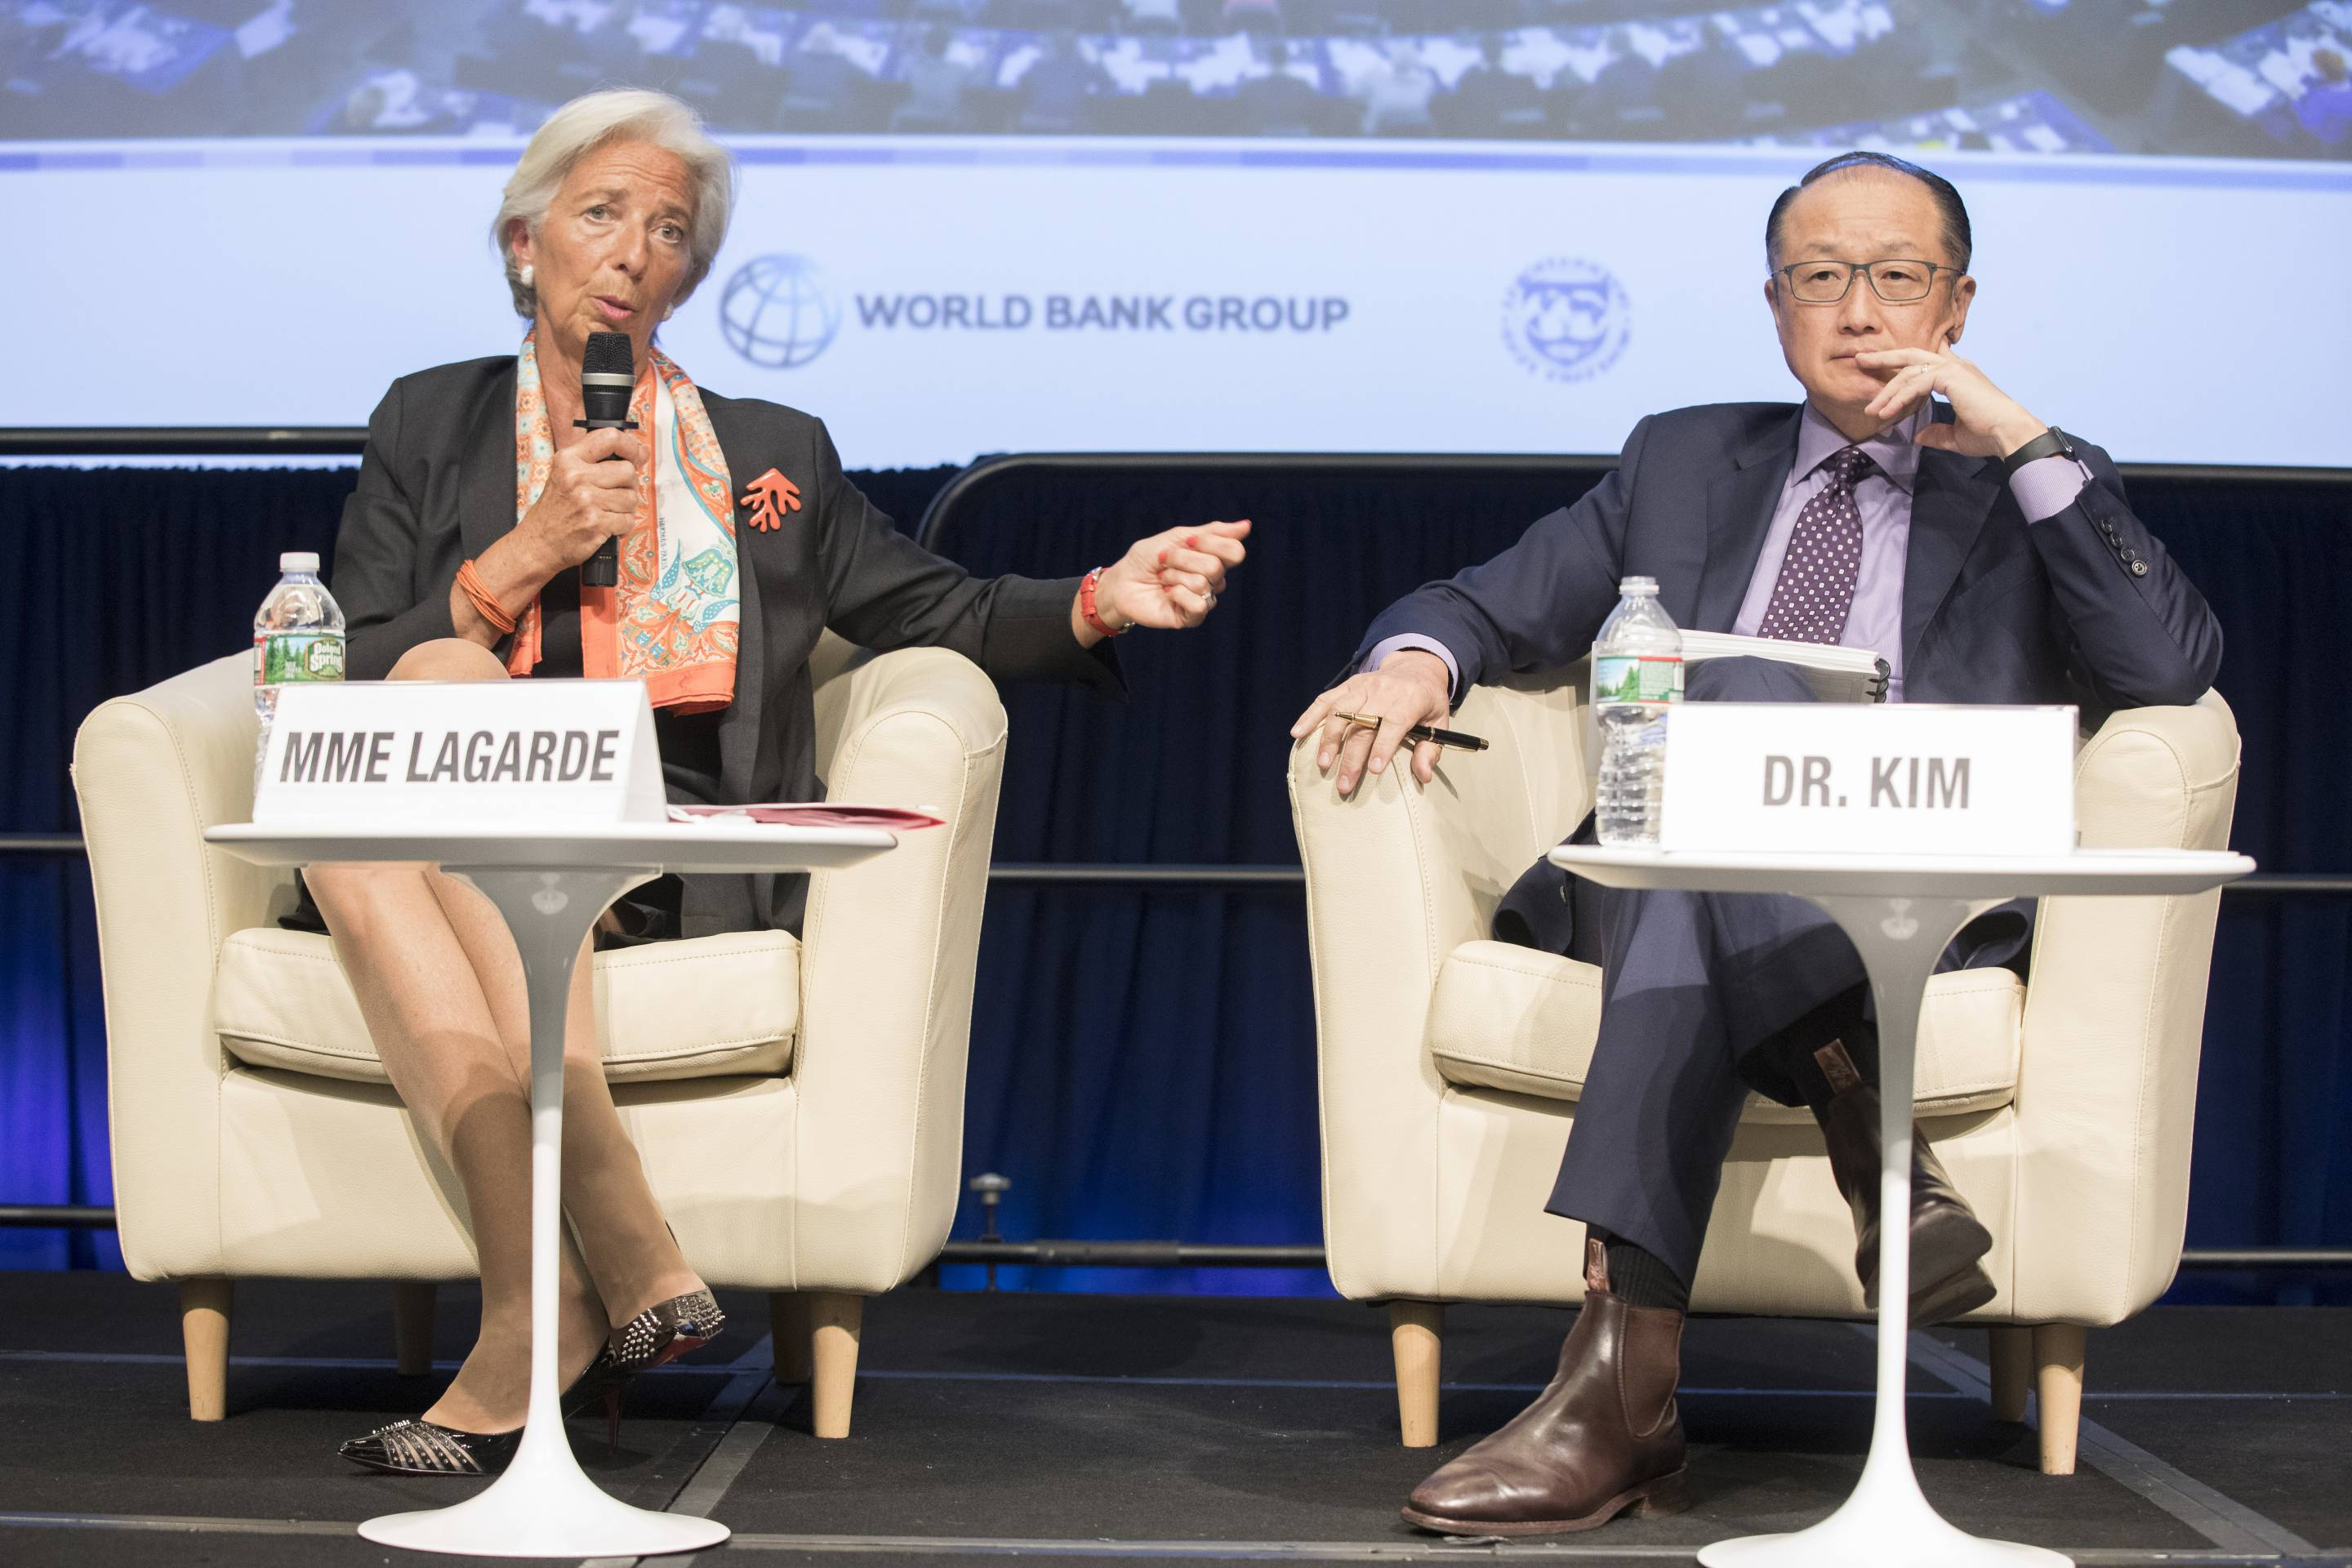 International Monetary Fund Managing Director Christine Lagarde (L) and World Bank President Jim Yong Kim (R) share a stage on Apr. 17, 2017 in Washington, D.C.